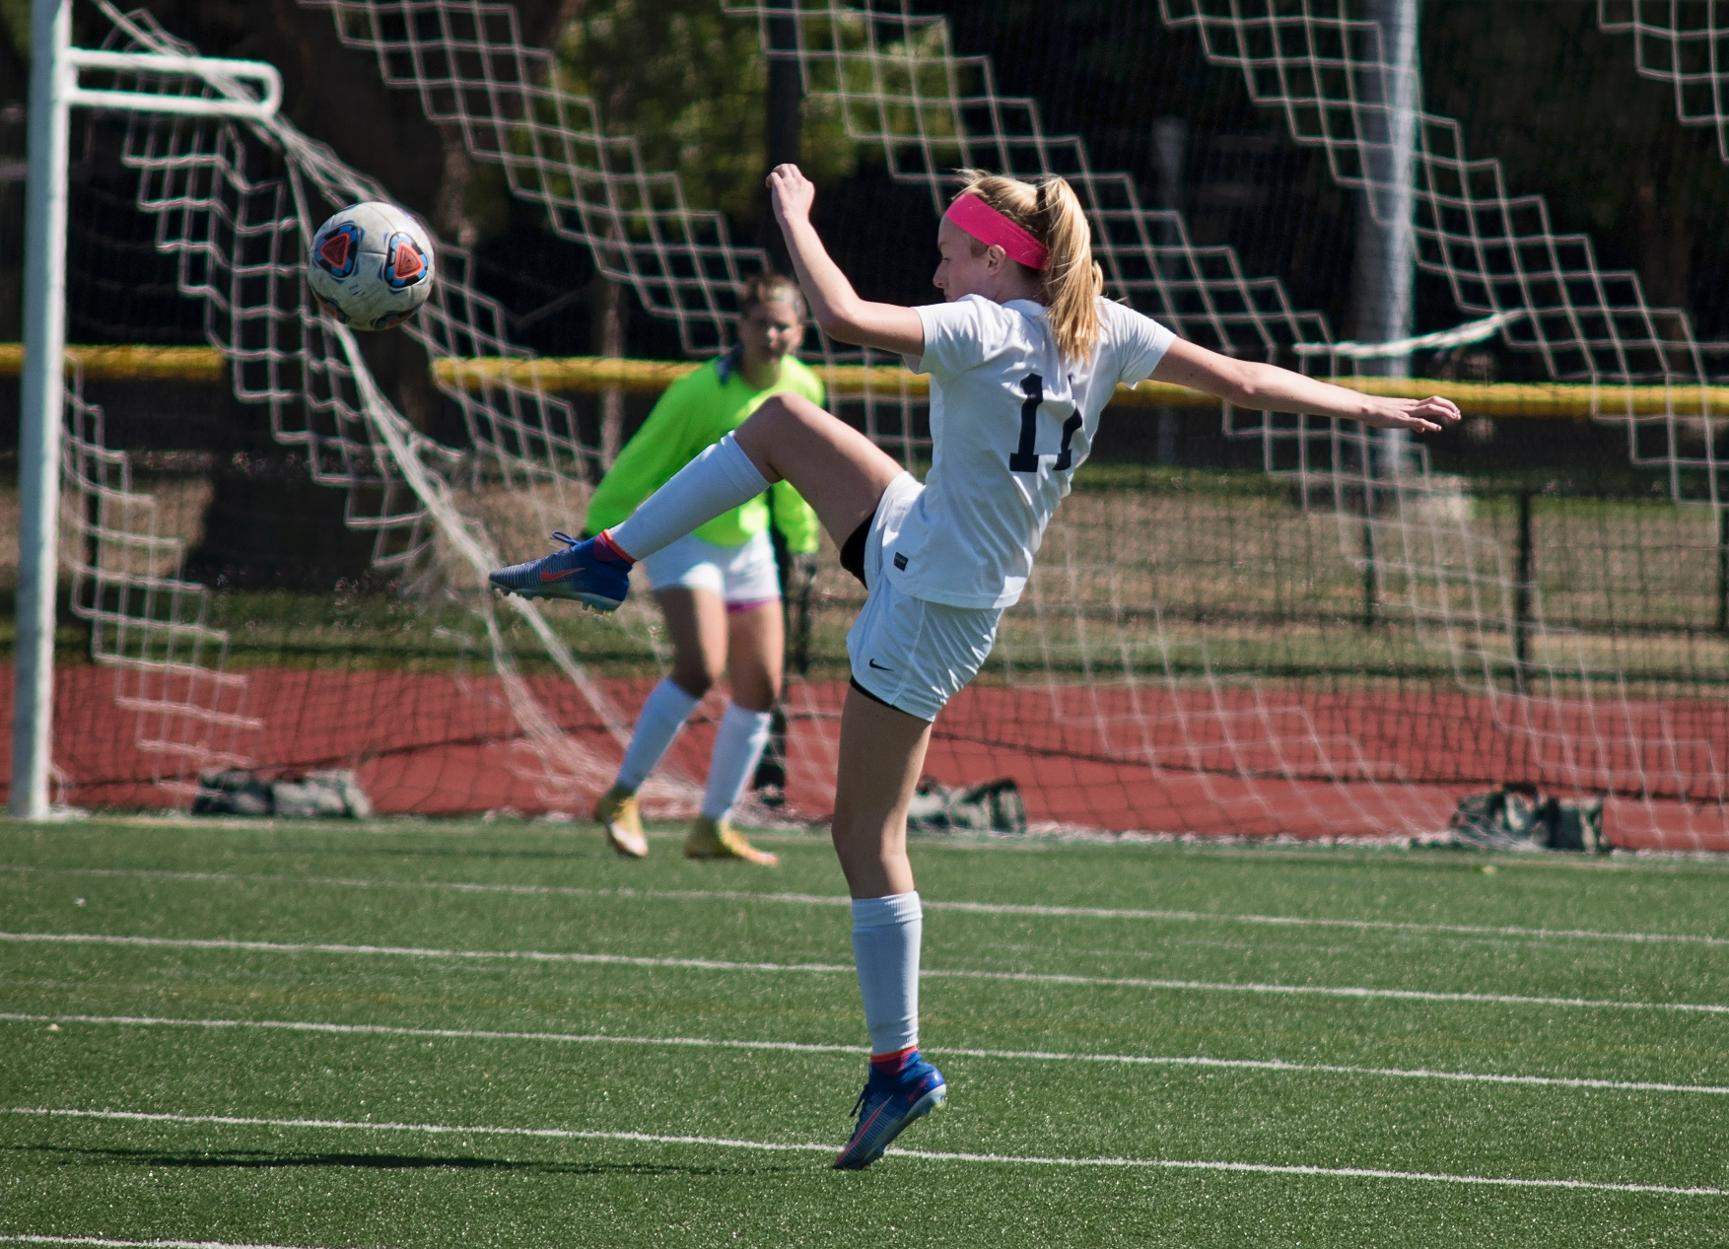 Six-Goal Second Half Powers Women's Soccer's Comeback at Mass. Maritime, 6-2